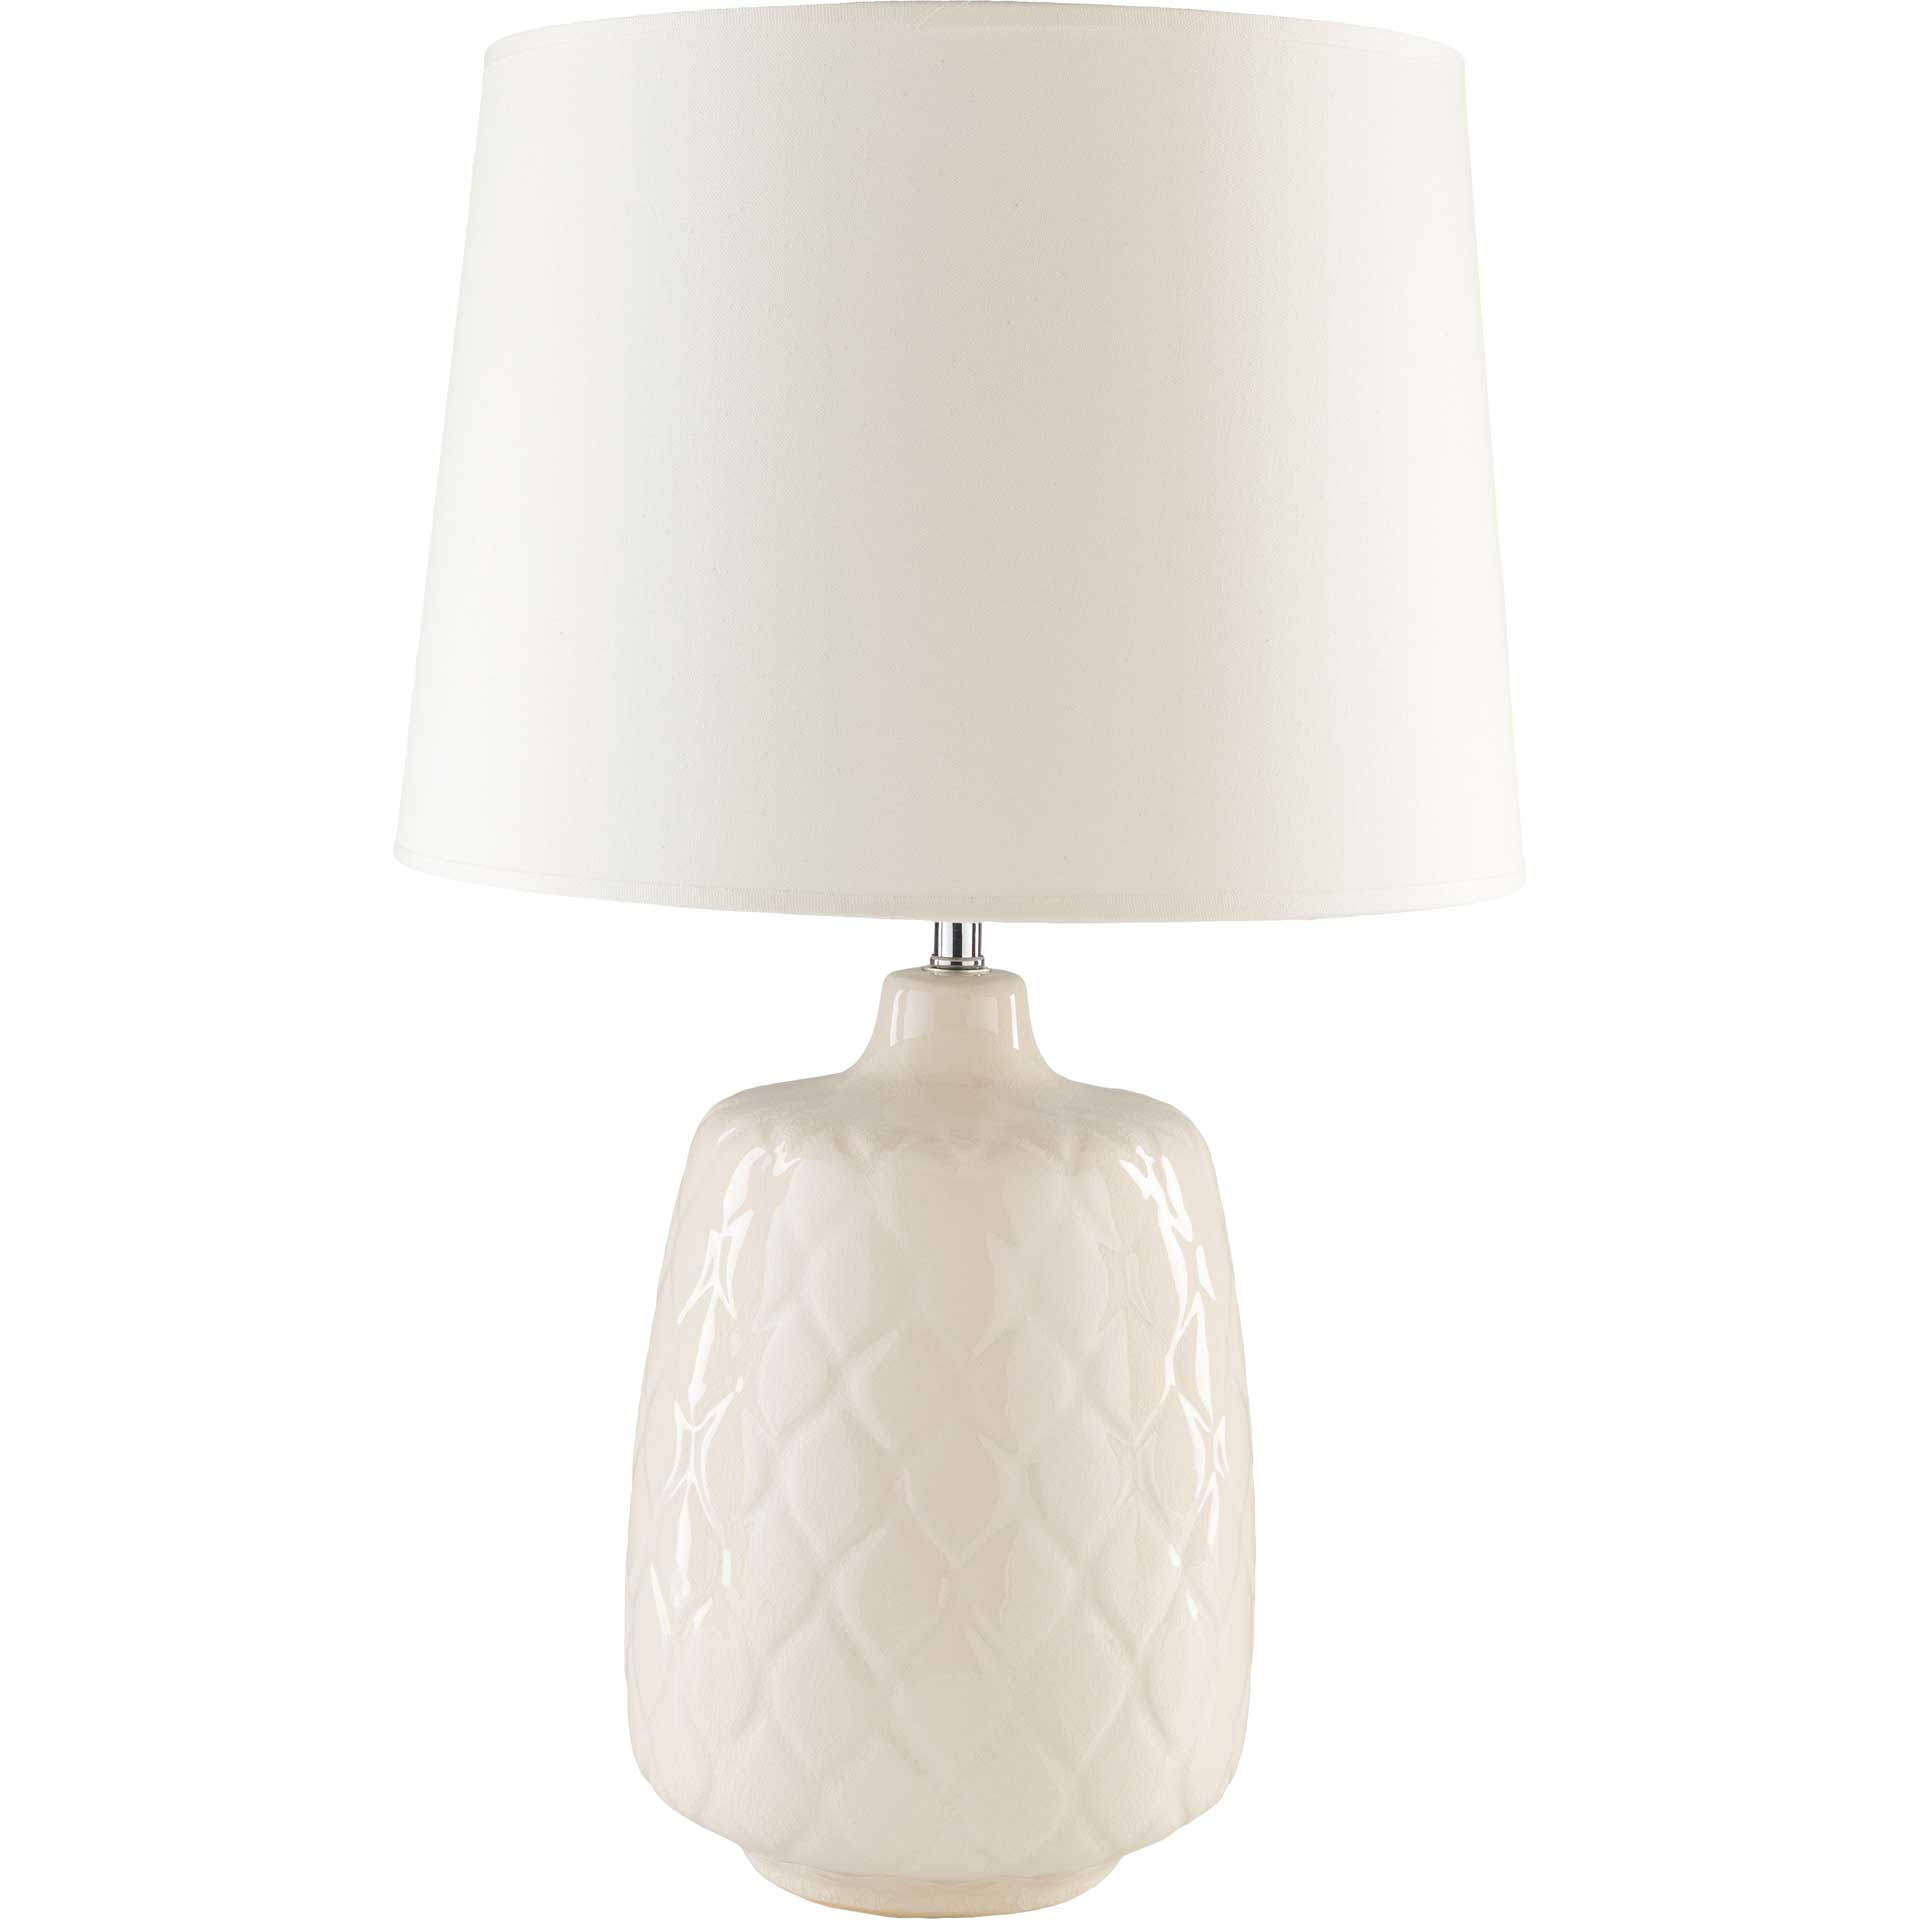 Claire Table Lamp Khaki/Cream